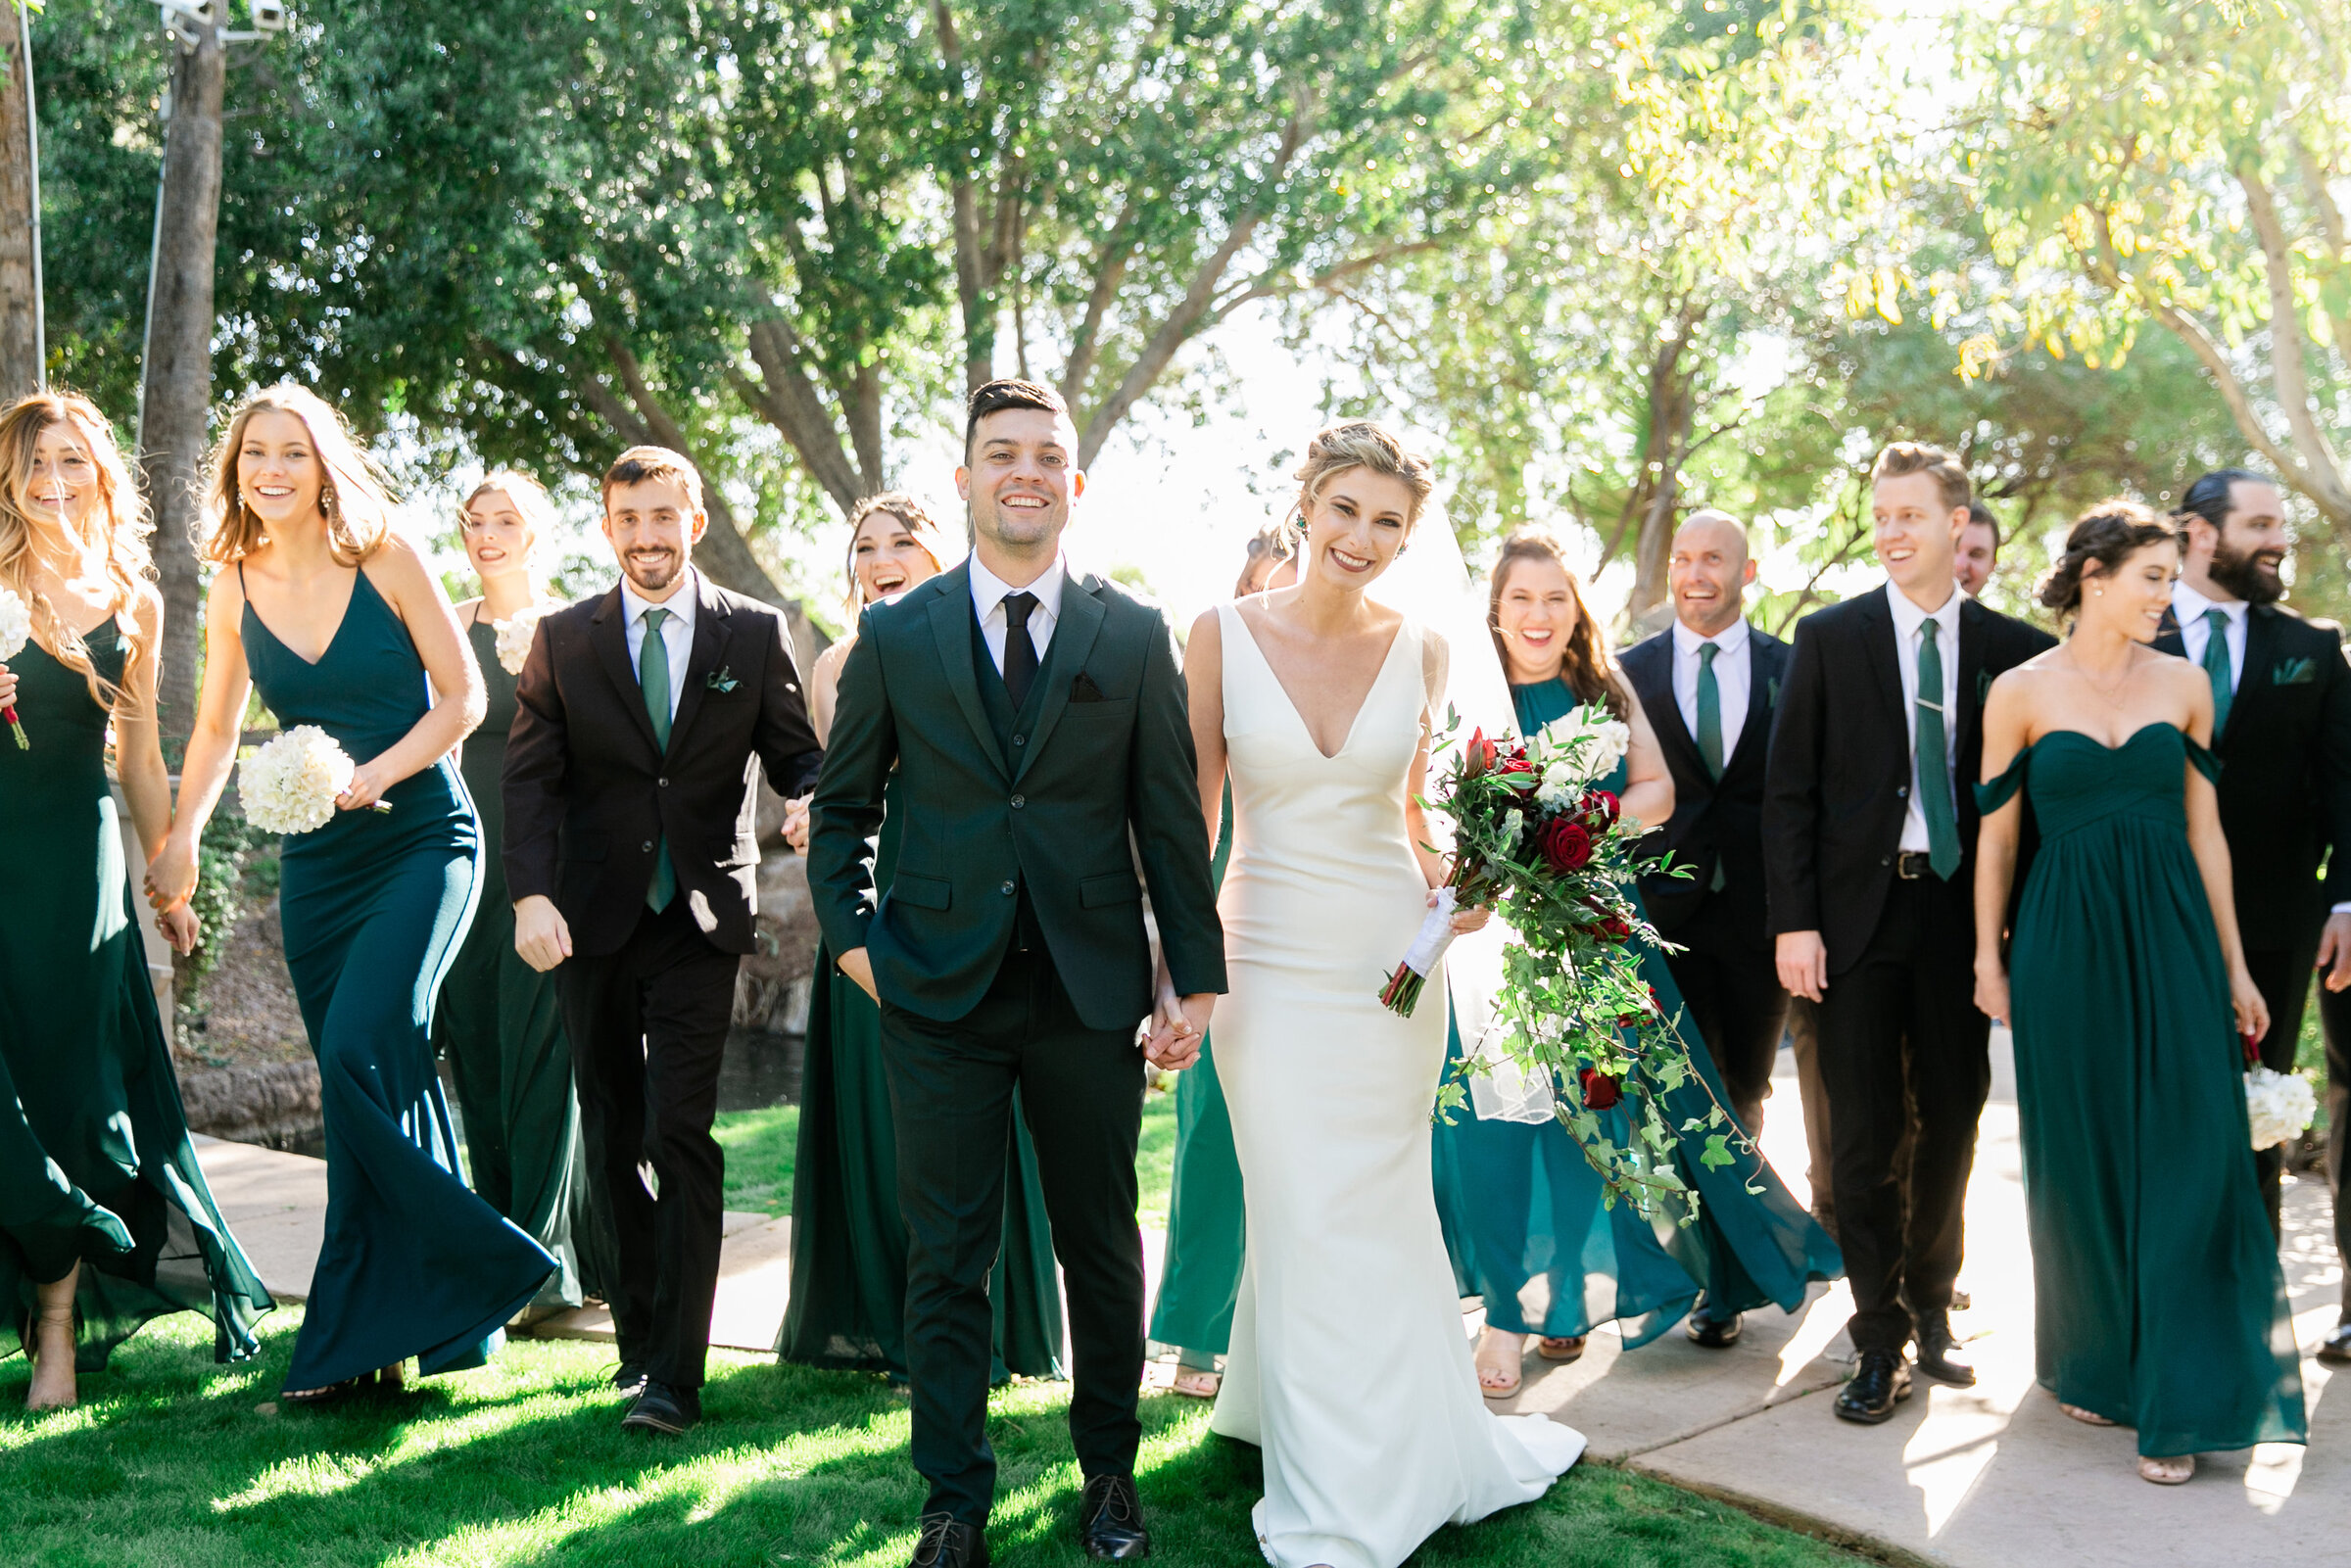 Karlie Colleen Photography - Gilbert Arizona Wedding - Val Vista Lakes - Brynne & Josh-196